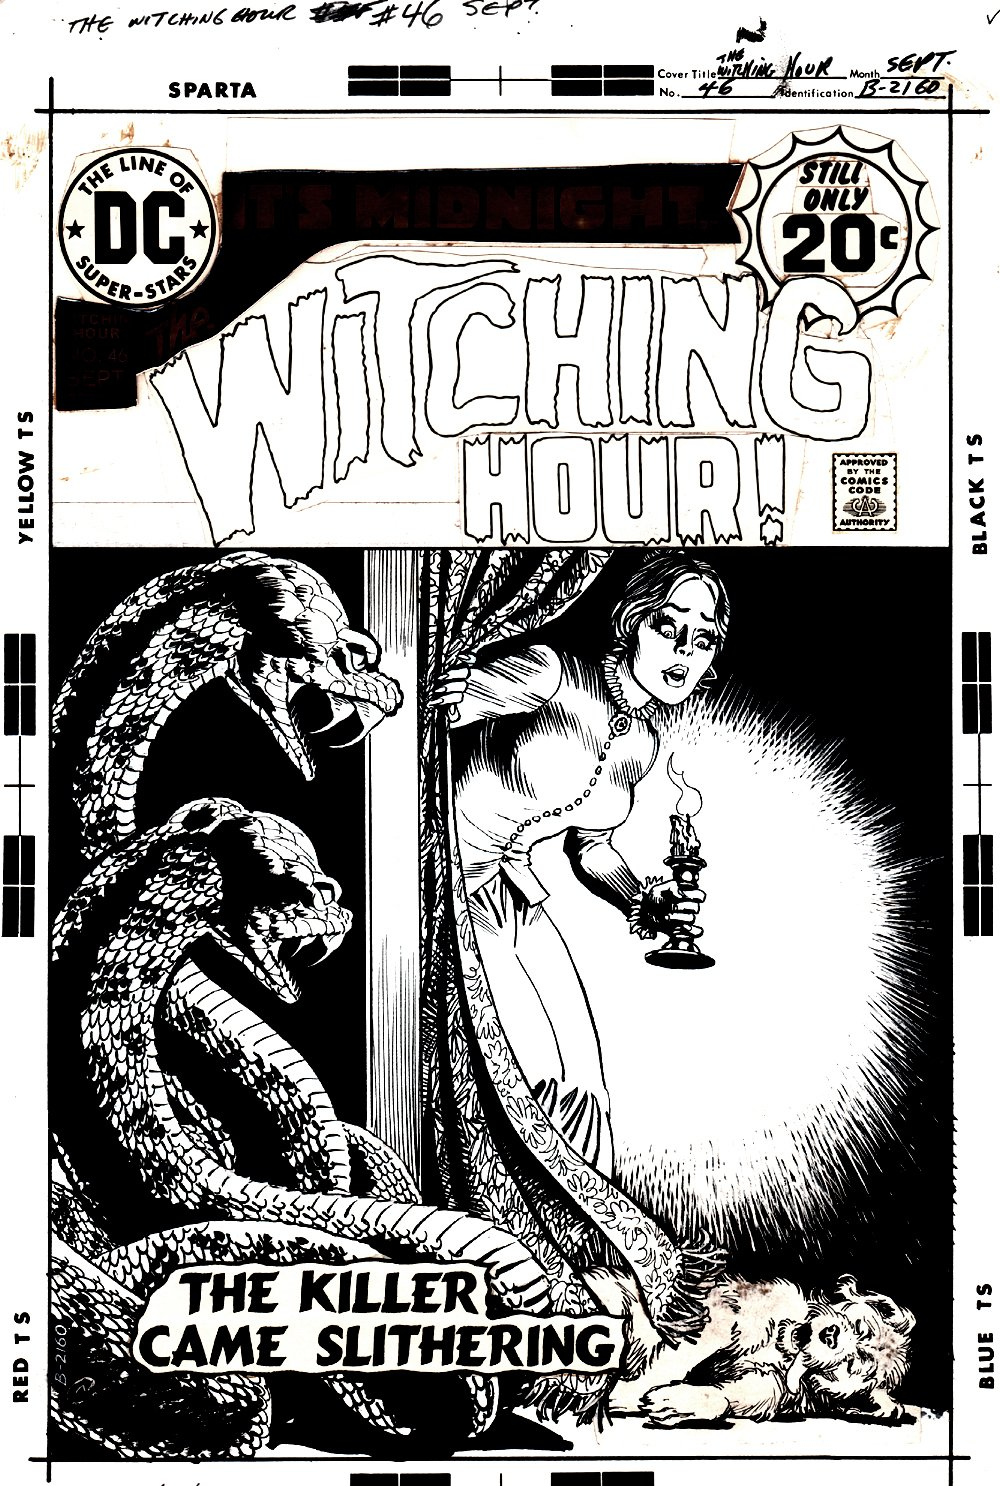 Witching Hour #46 Cover (1974)